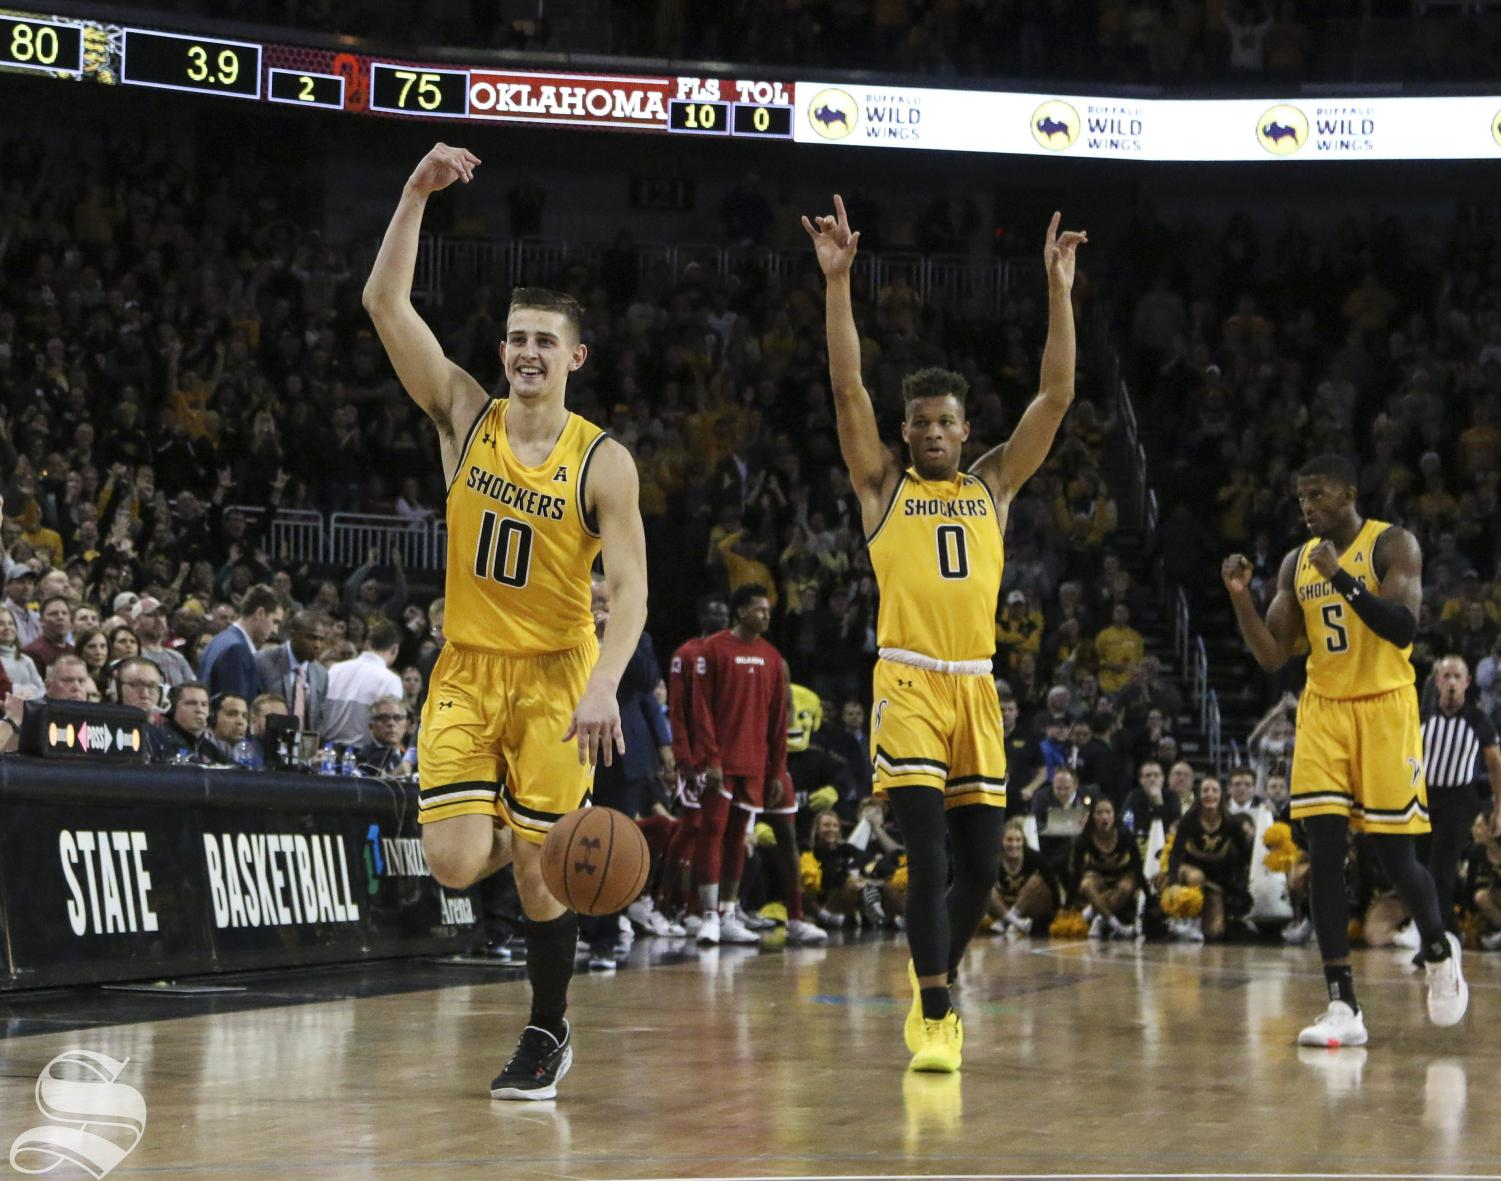 Shockers celebrate after winning against Oklahoma at Intrust Bank Arena Saturday, Dec. 14, 2019.